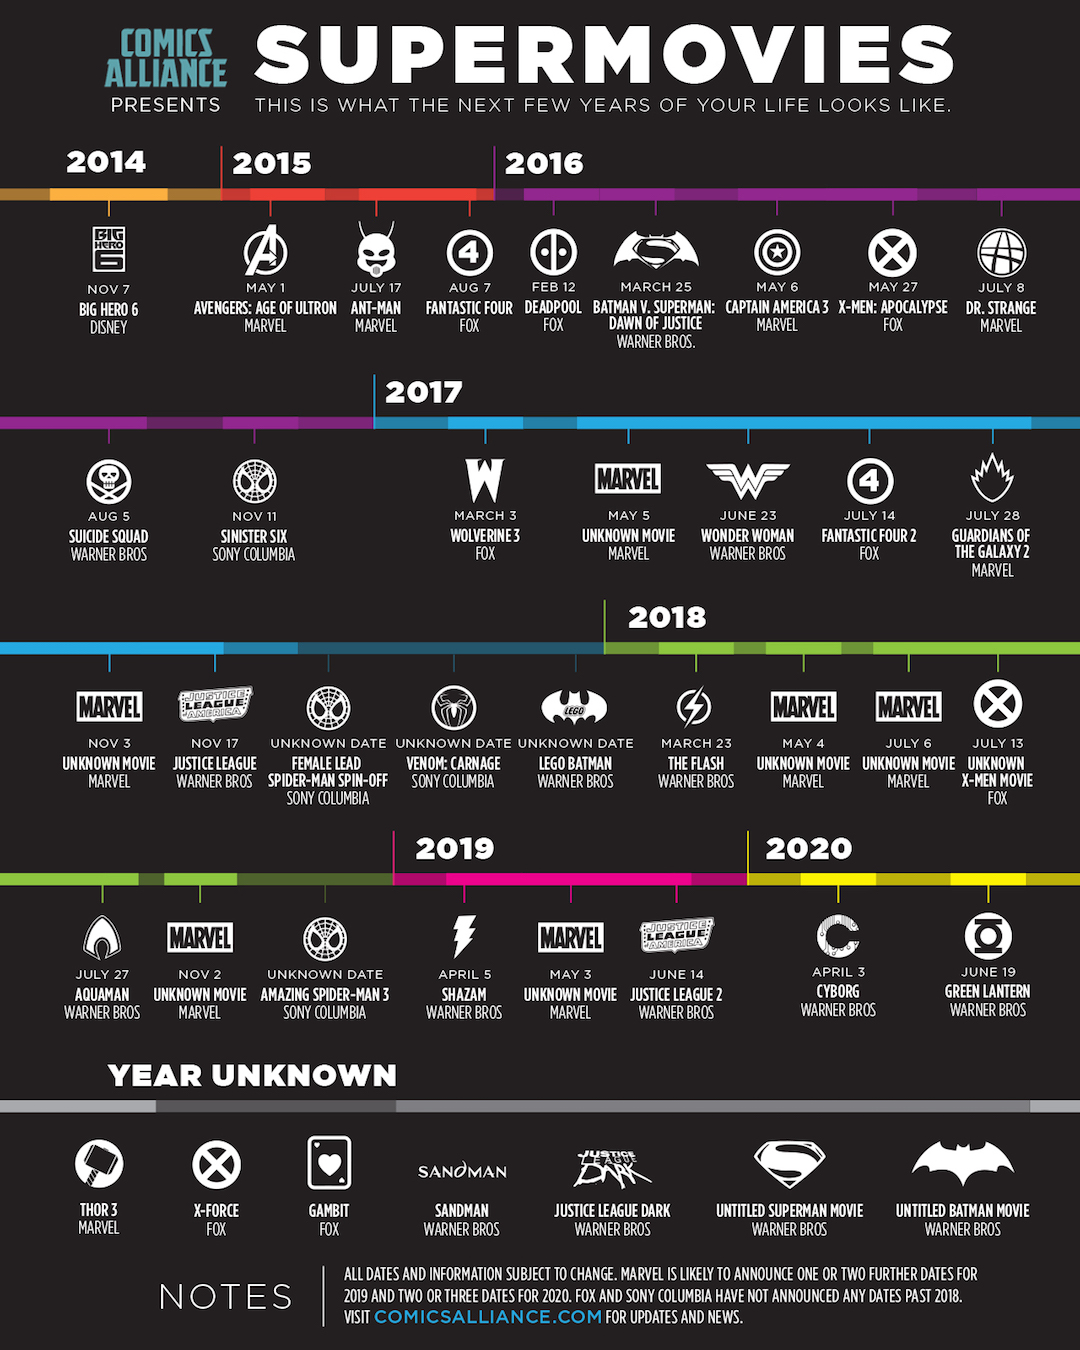 Comic book movie releases through 2020 #infographic